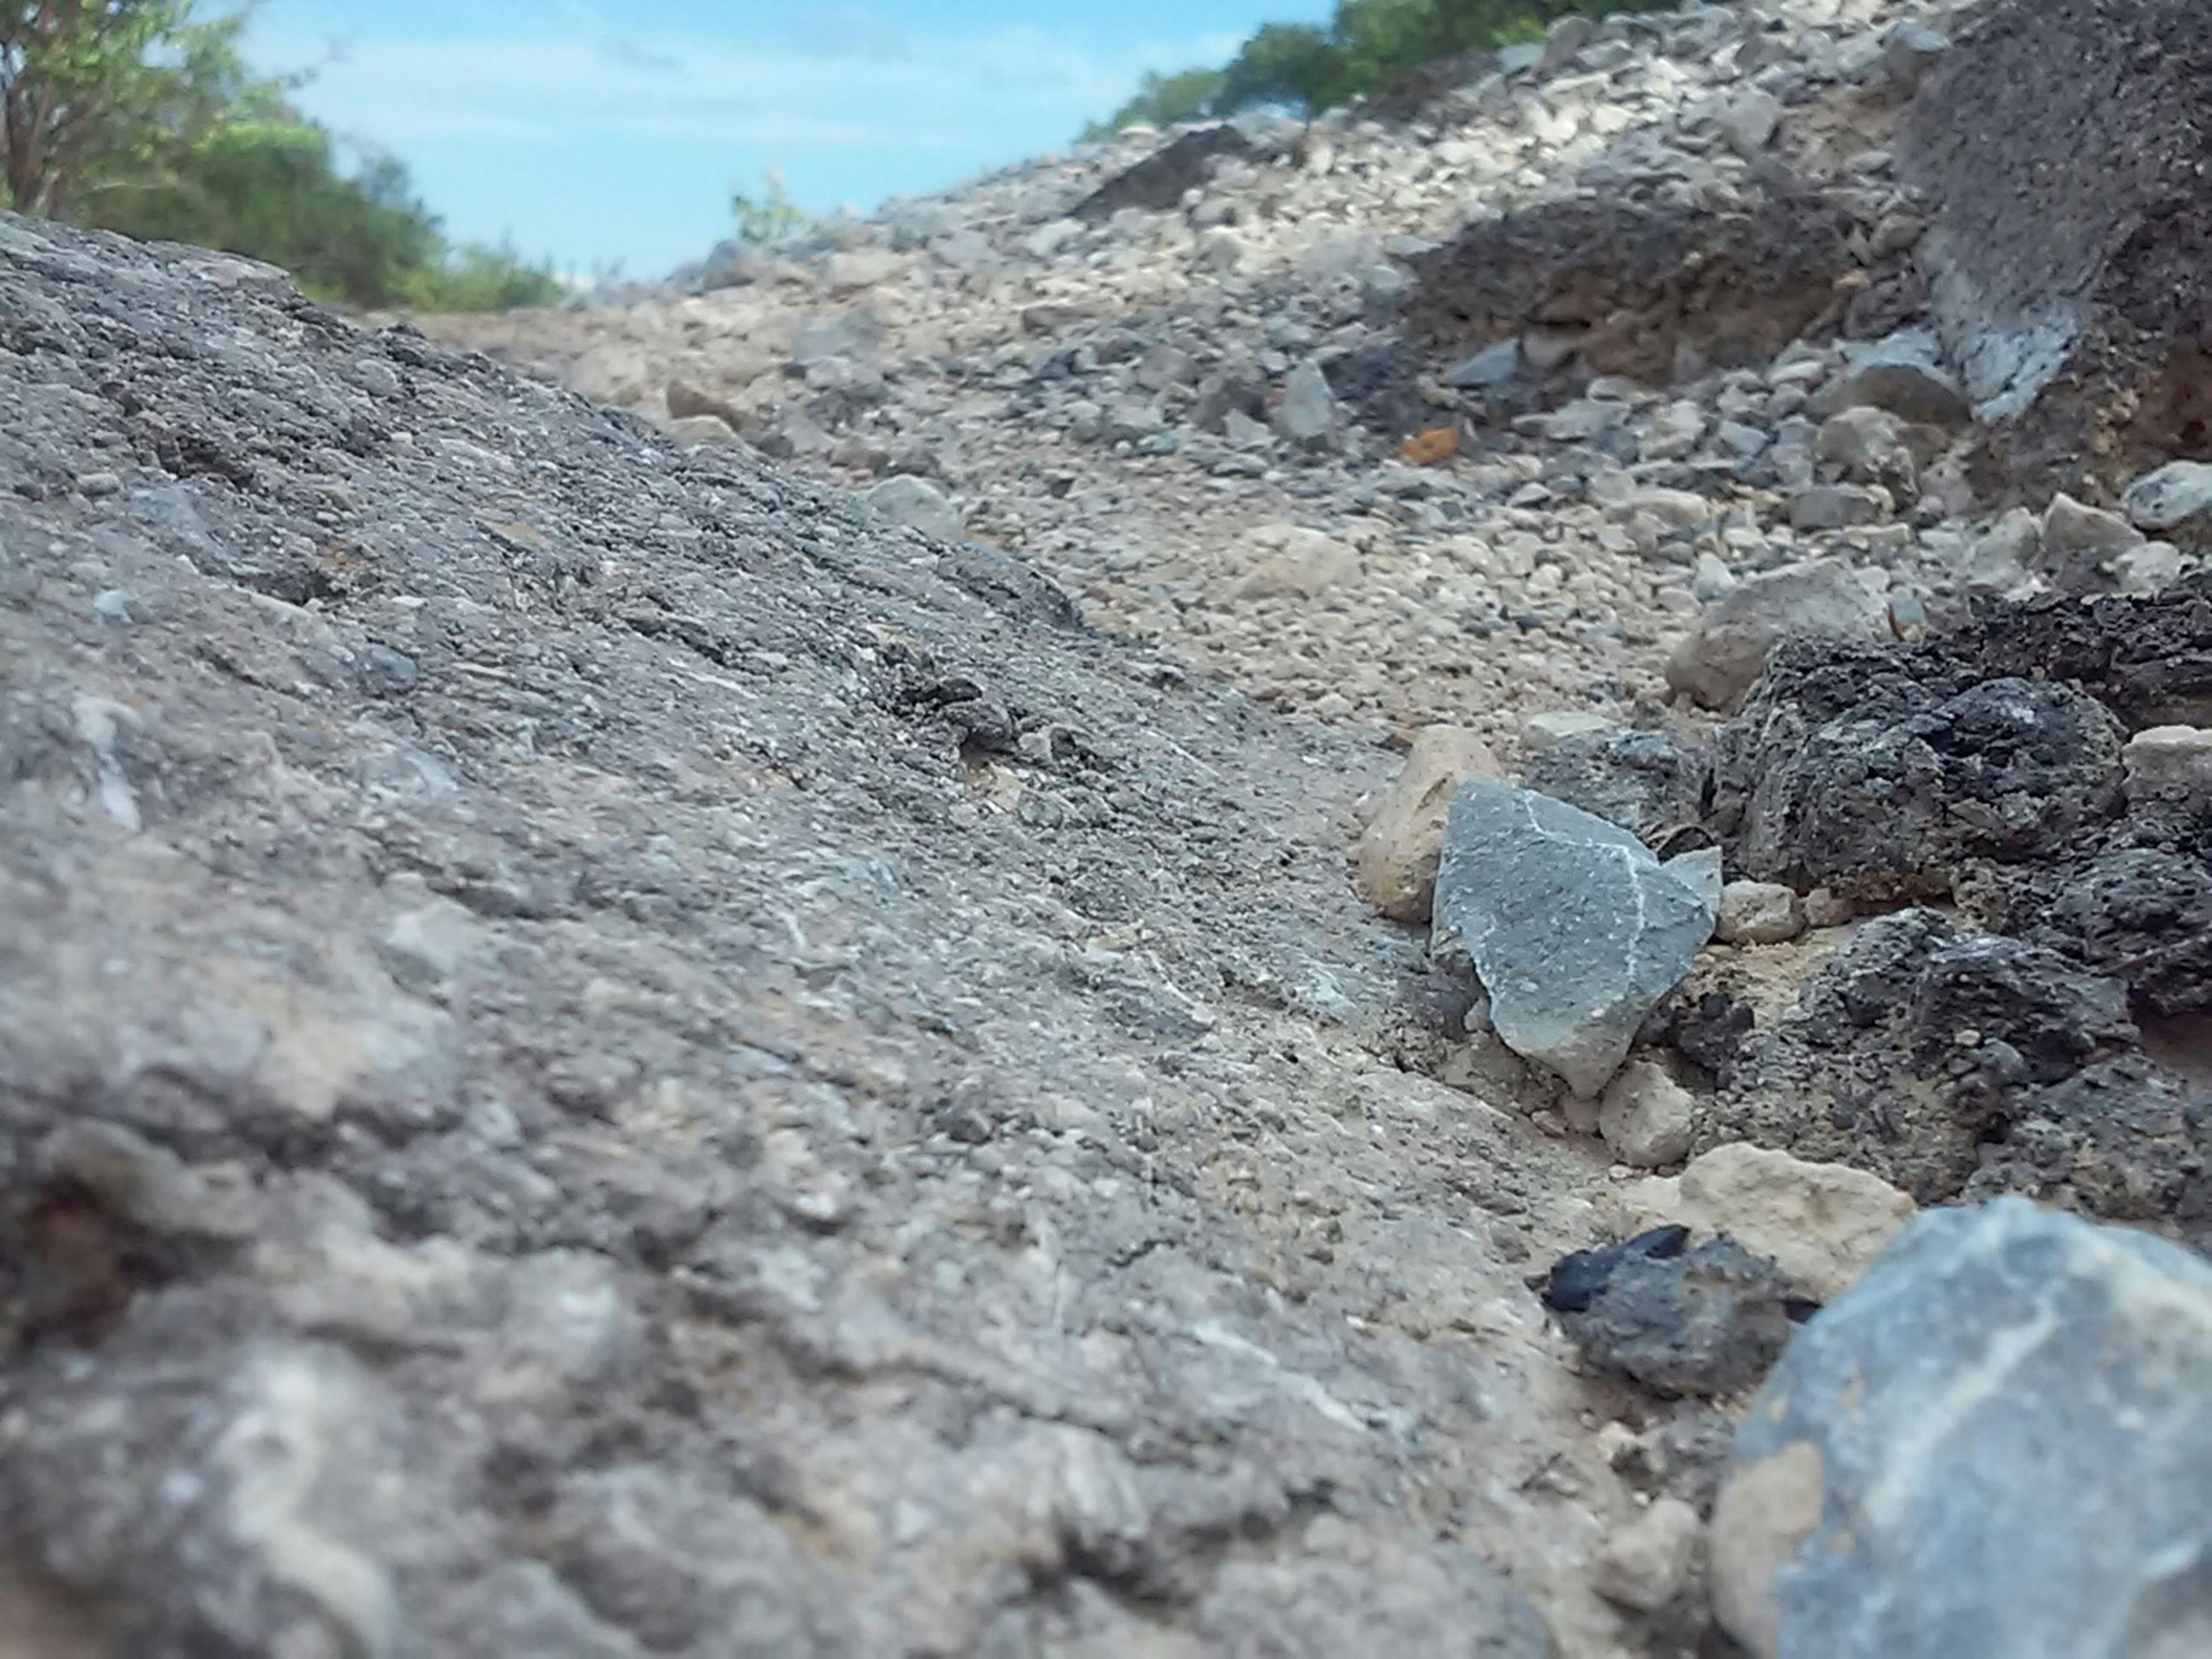 rock - object, textured, nature, tranquility, rough, rock formation, rock, beauty in nature, surface level, sky, tranquil scene, close-up, day, stone - object, outdoors, sunlight, mountain, scenics, stone, no people